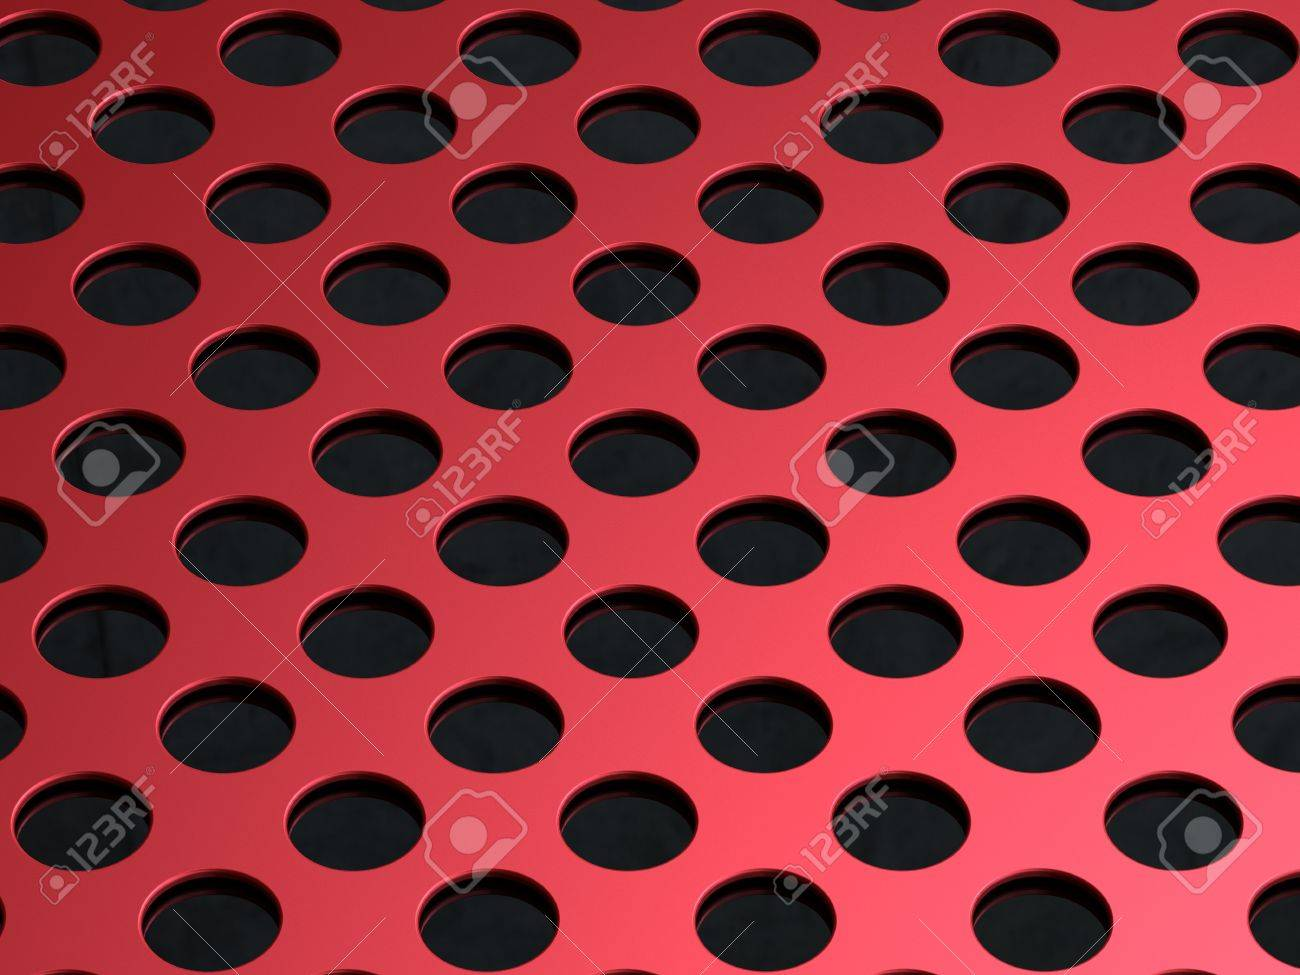 3D illustration of the red perforated metal plate on black background Stock Photo - 8738110